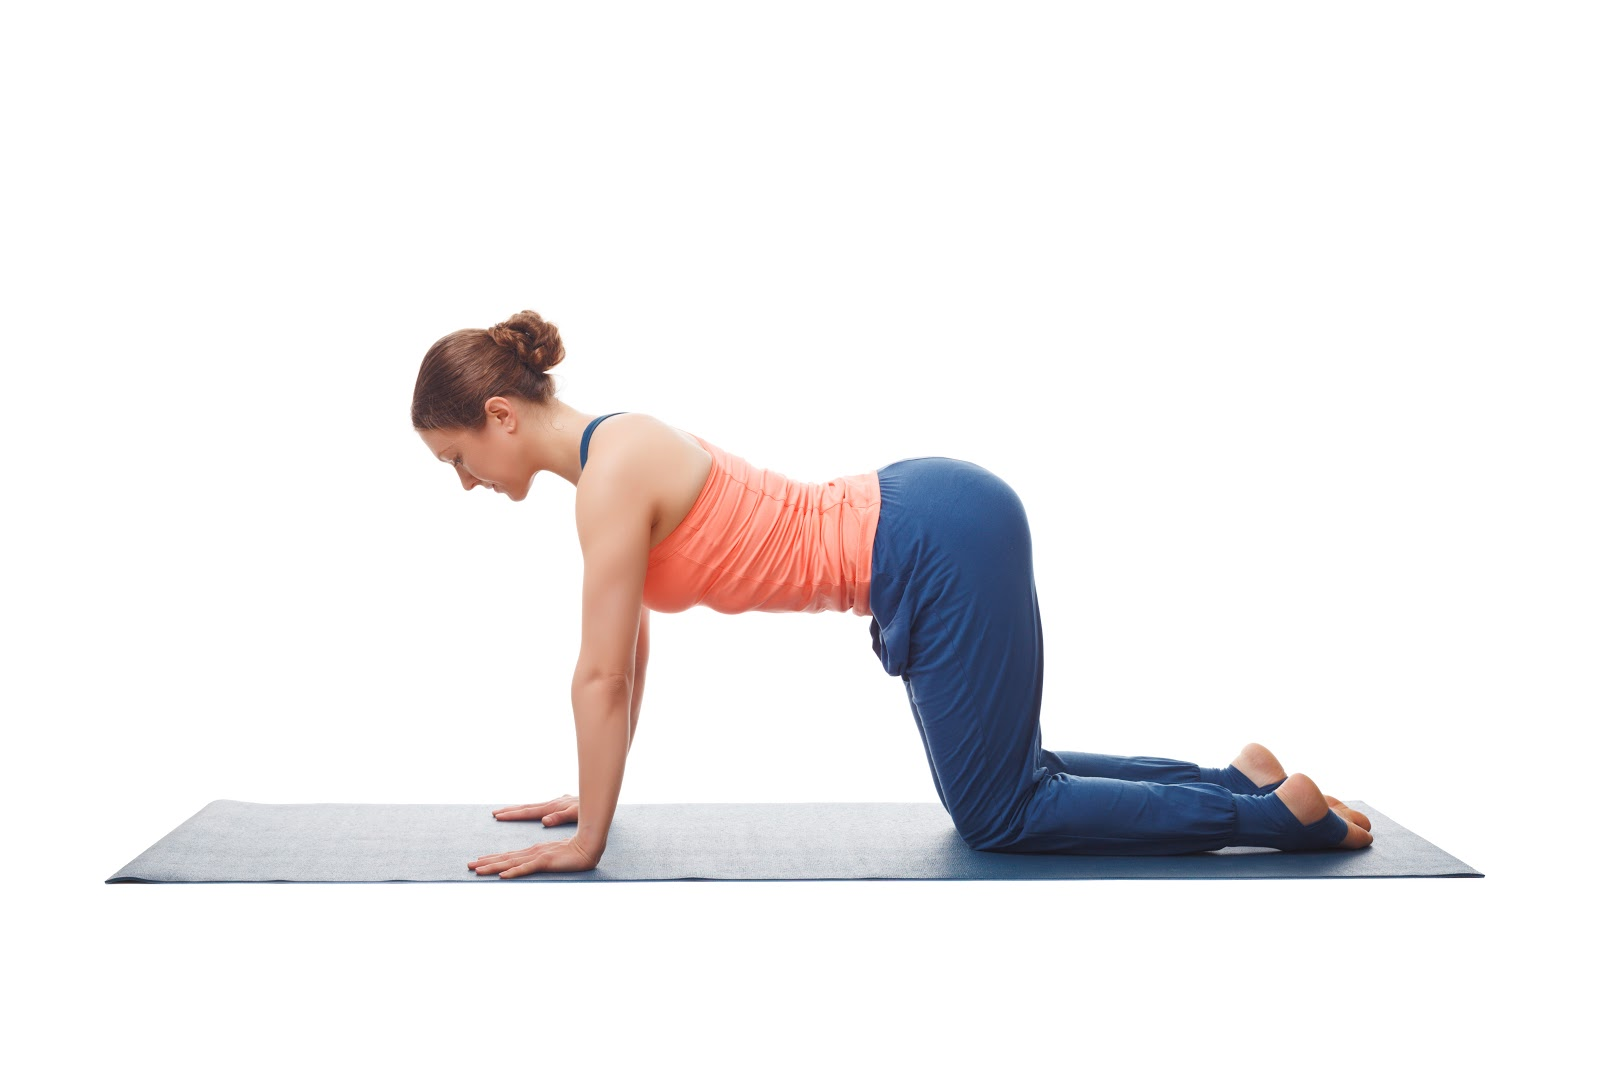 The cow pose is an easy, gentle way to warm up the spine.